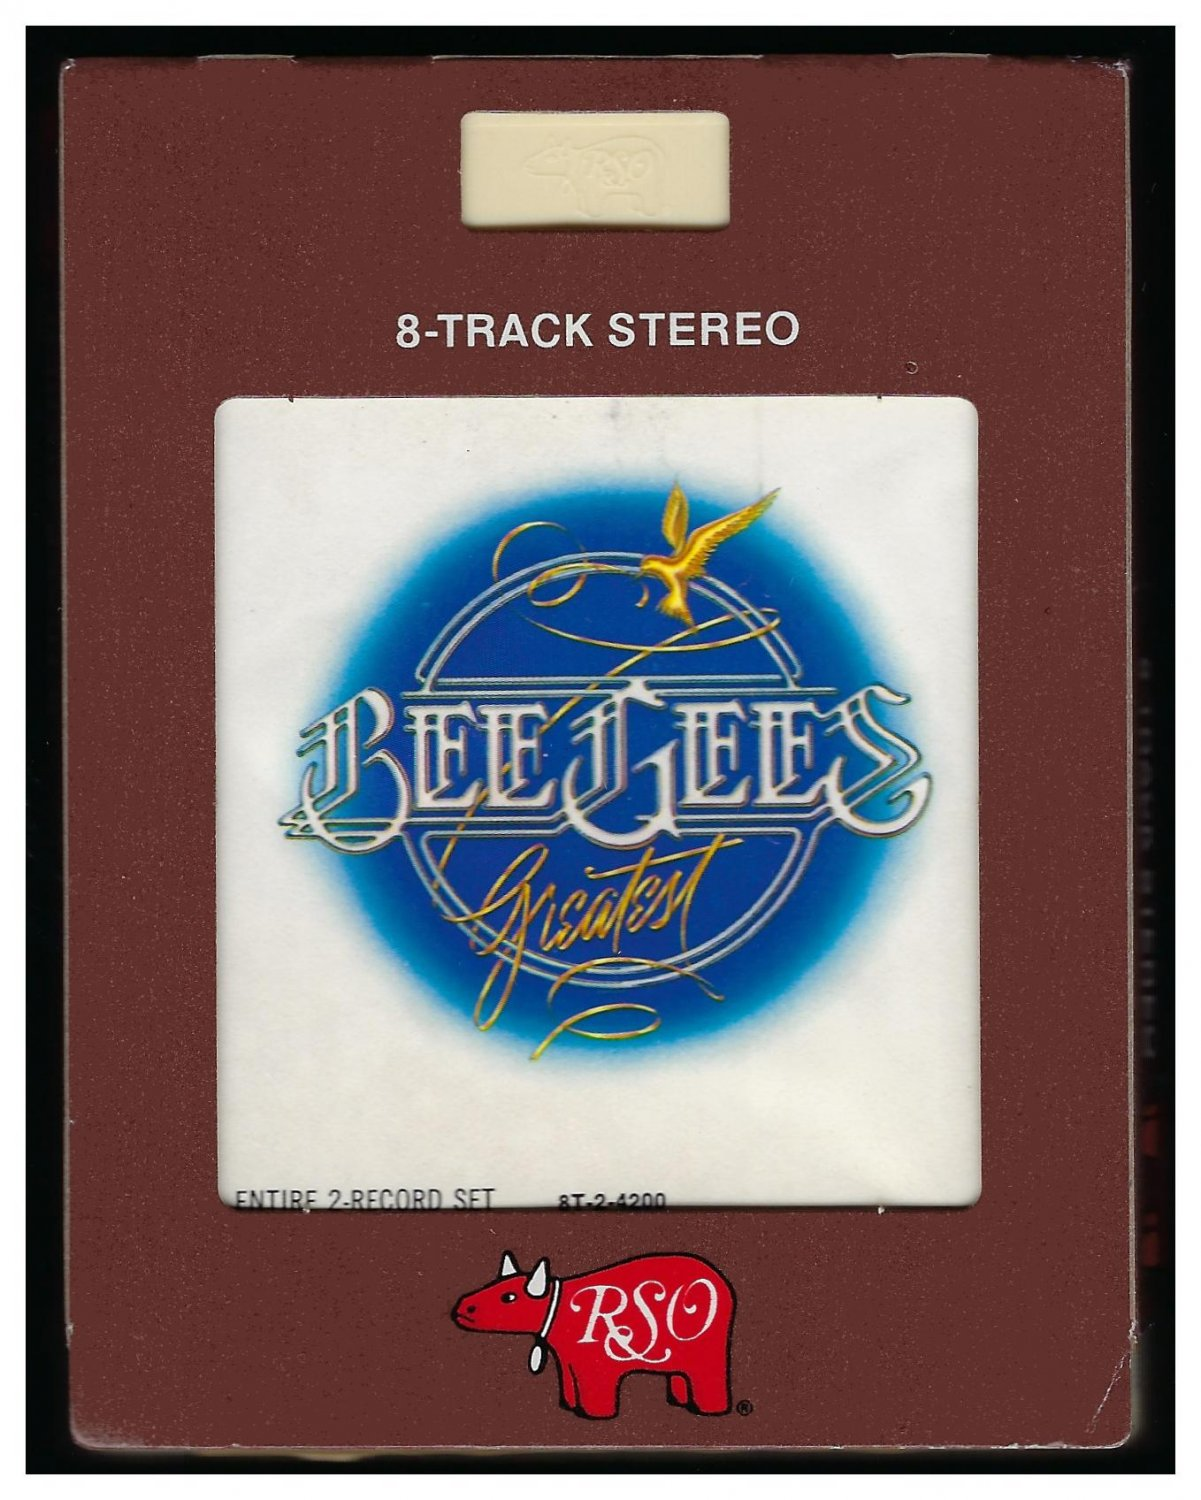 Bee Gees - Bee Gee's Greatest Hits Entire 2-Record Set 1979 RSO A45 8-TRACK TAPE